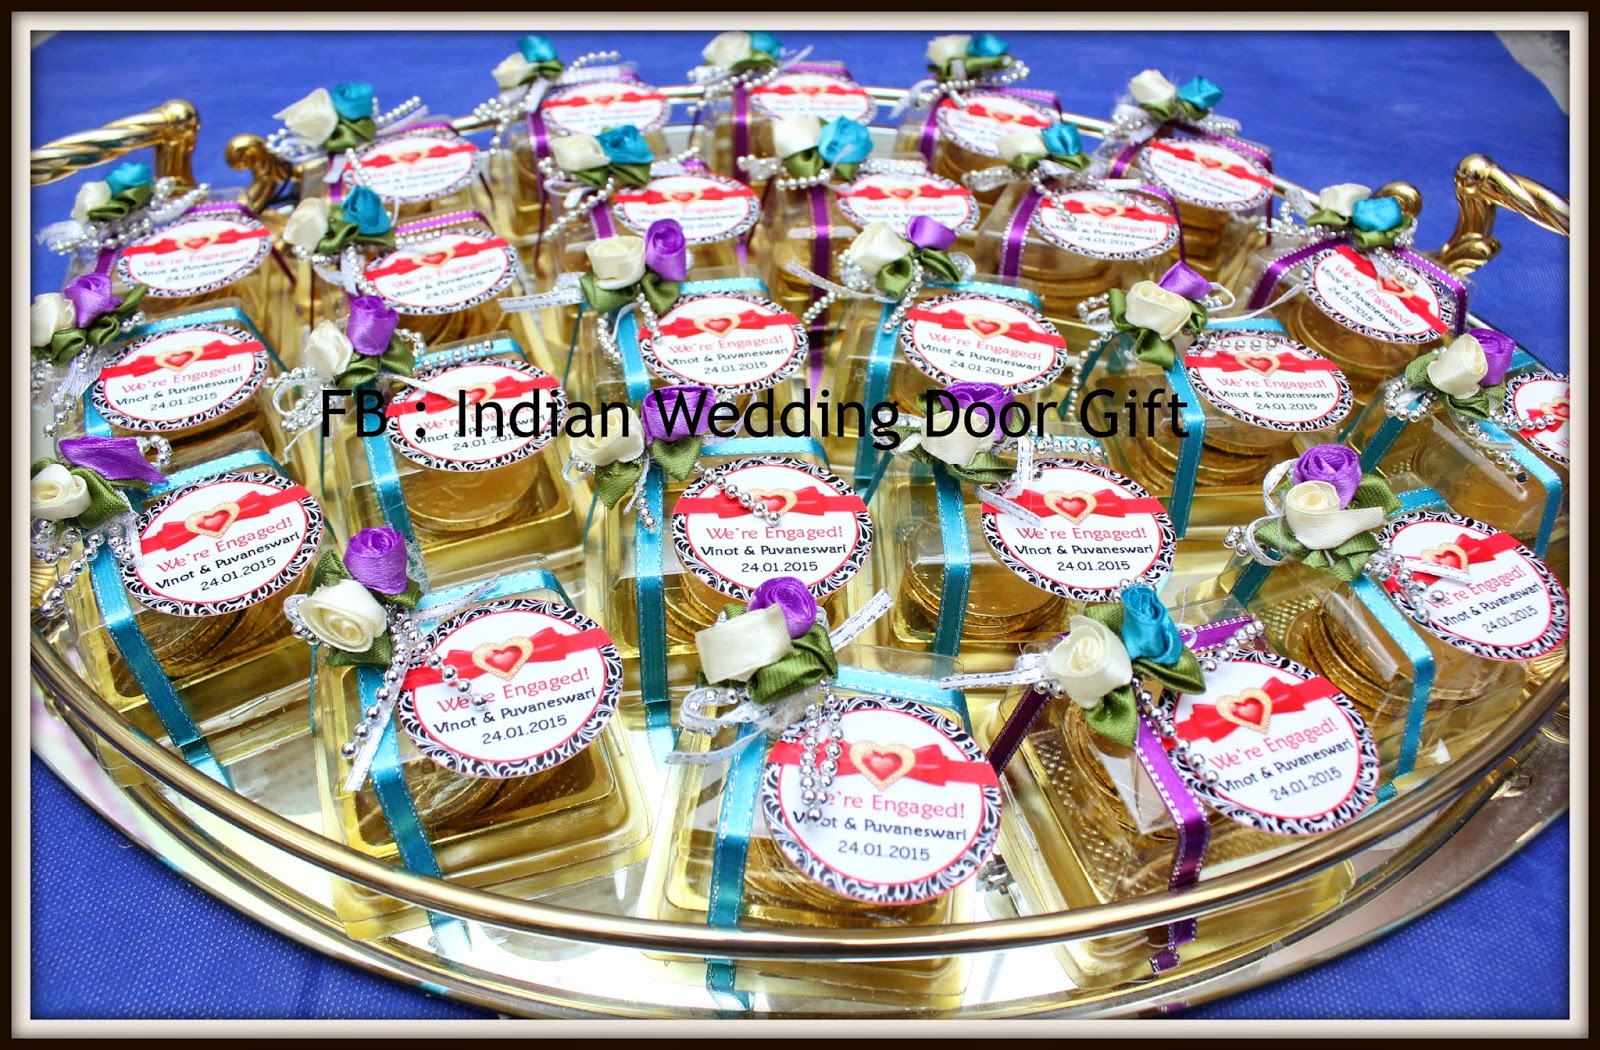 Indian wedding door gift may 2015 for Idea for door gift